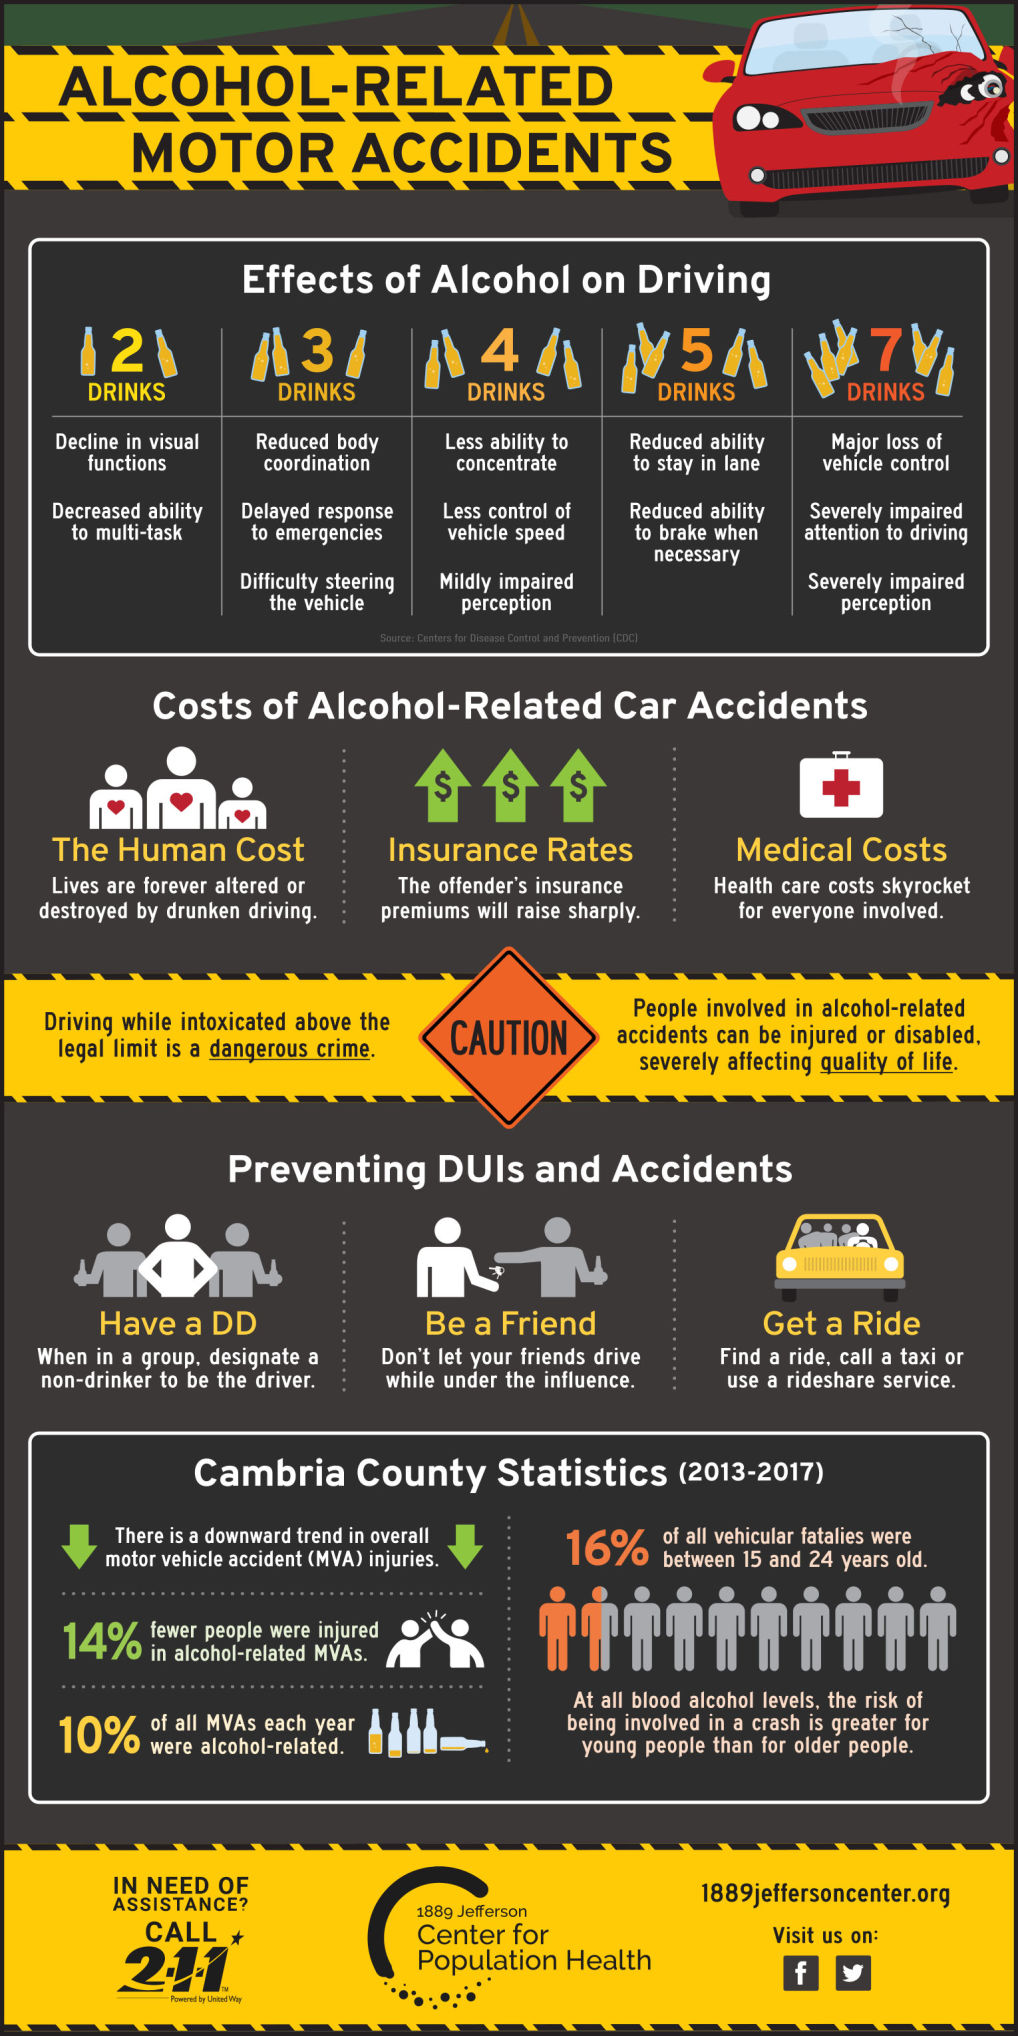 HEALTH MATTERS   Traffic safety remains an important health issue